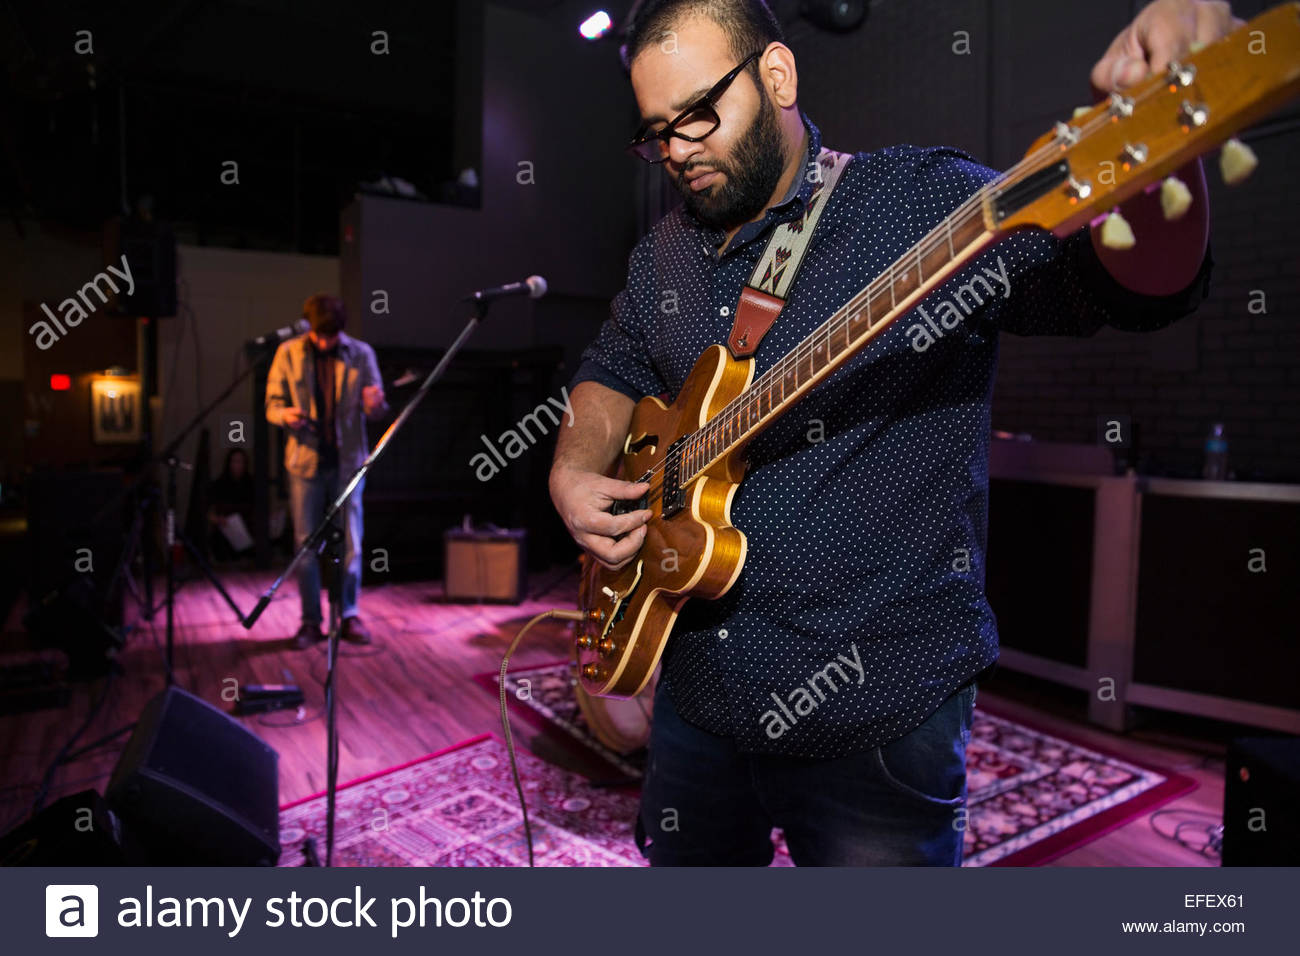 Musical performer tuning guitar on stage - Stock Image